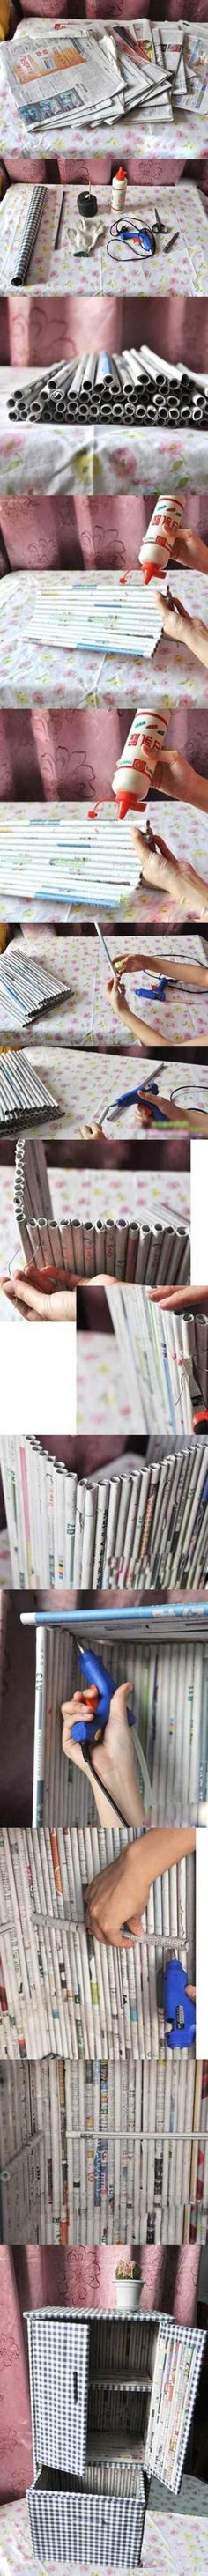 Reuse the newspapers--wow, this would take an amazing amount of patience....  But, really, how cool is this thing?!